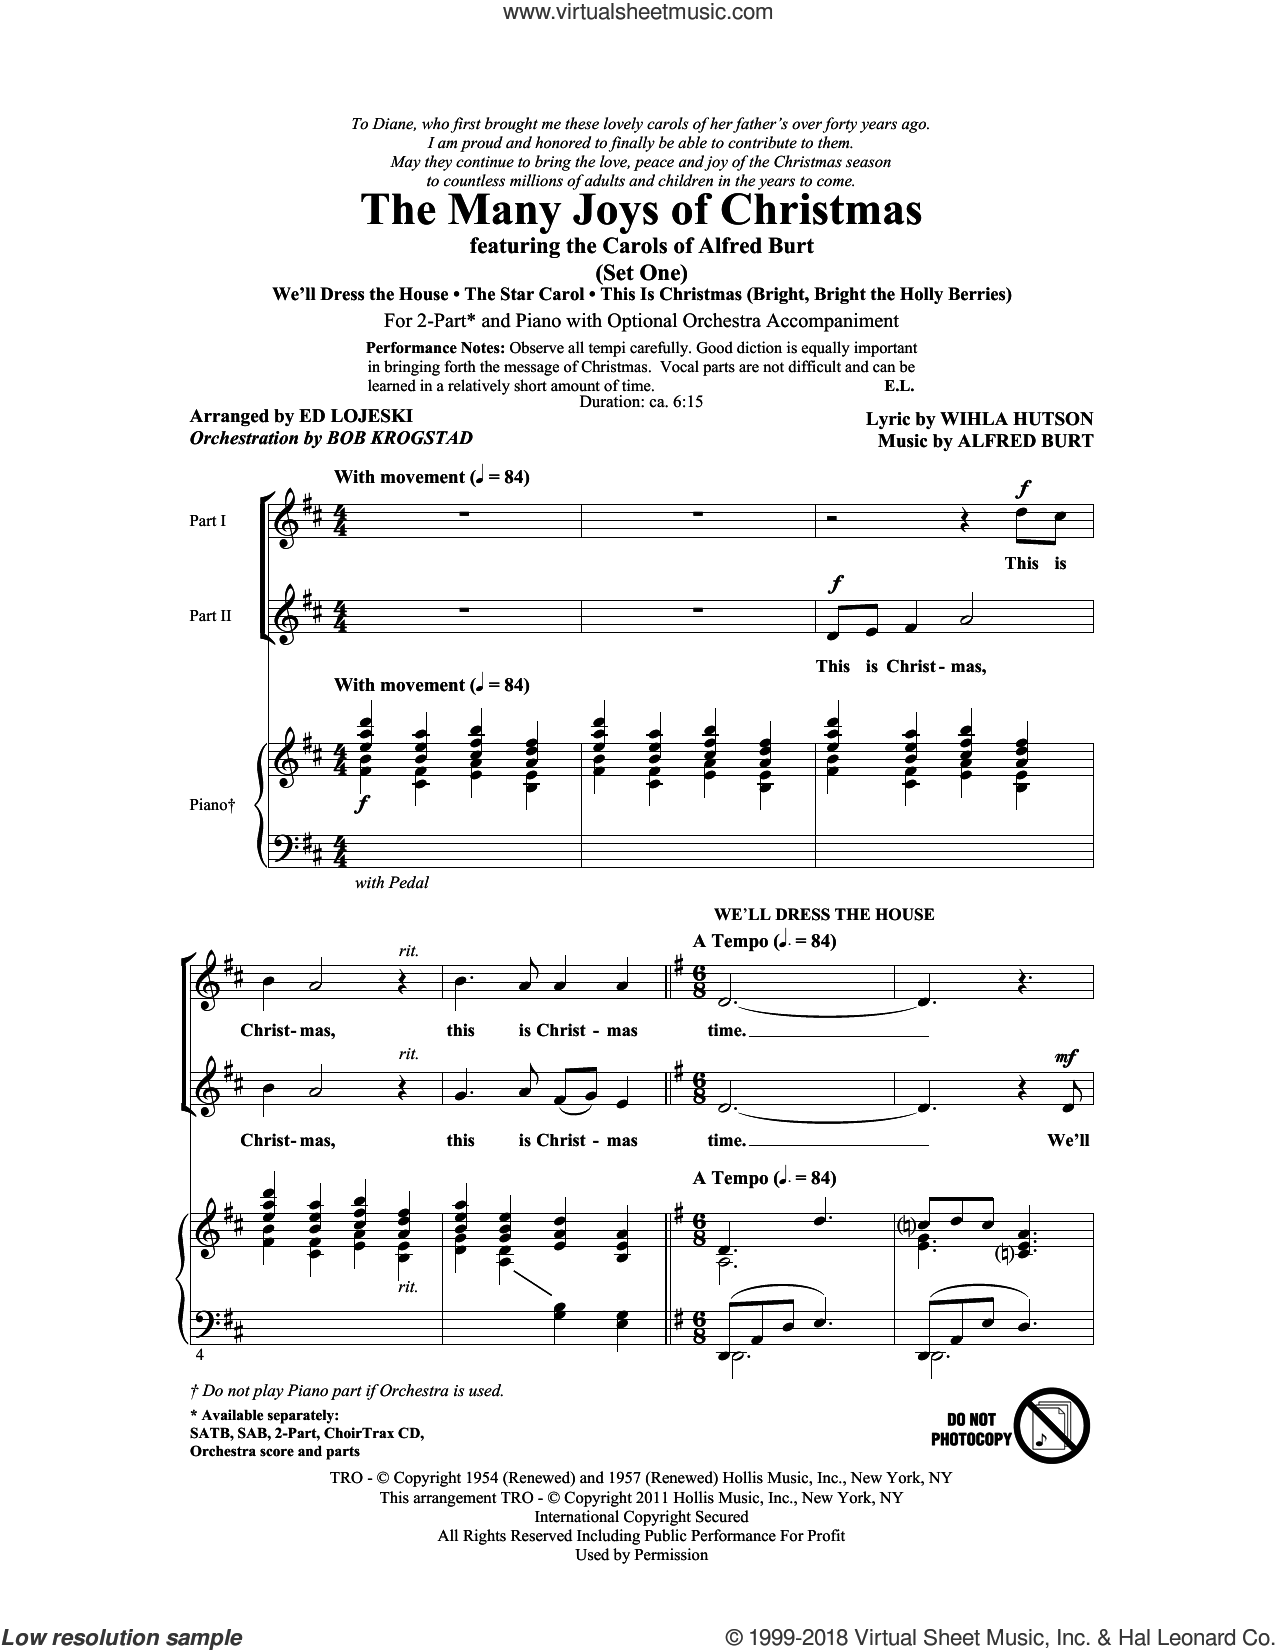 The Many Joys Of Christmas (featuring The Carols of Alfred Burt) Set 1 sheet music for choir and piano (duets) by Ed Lojeski